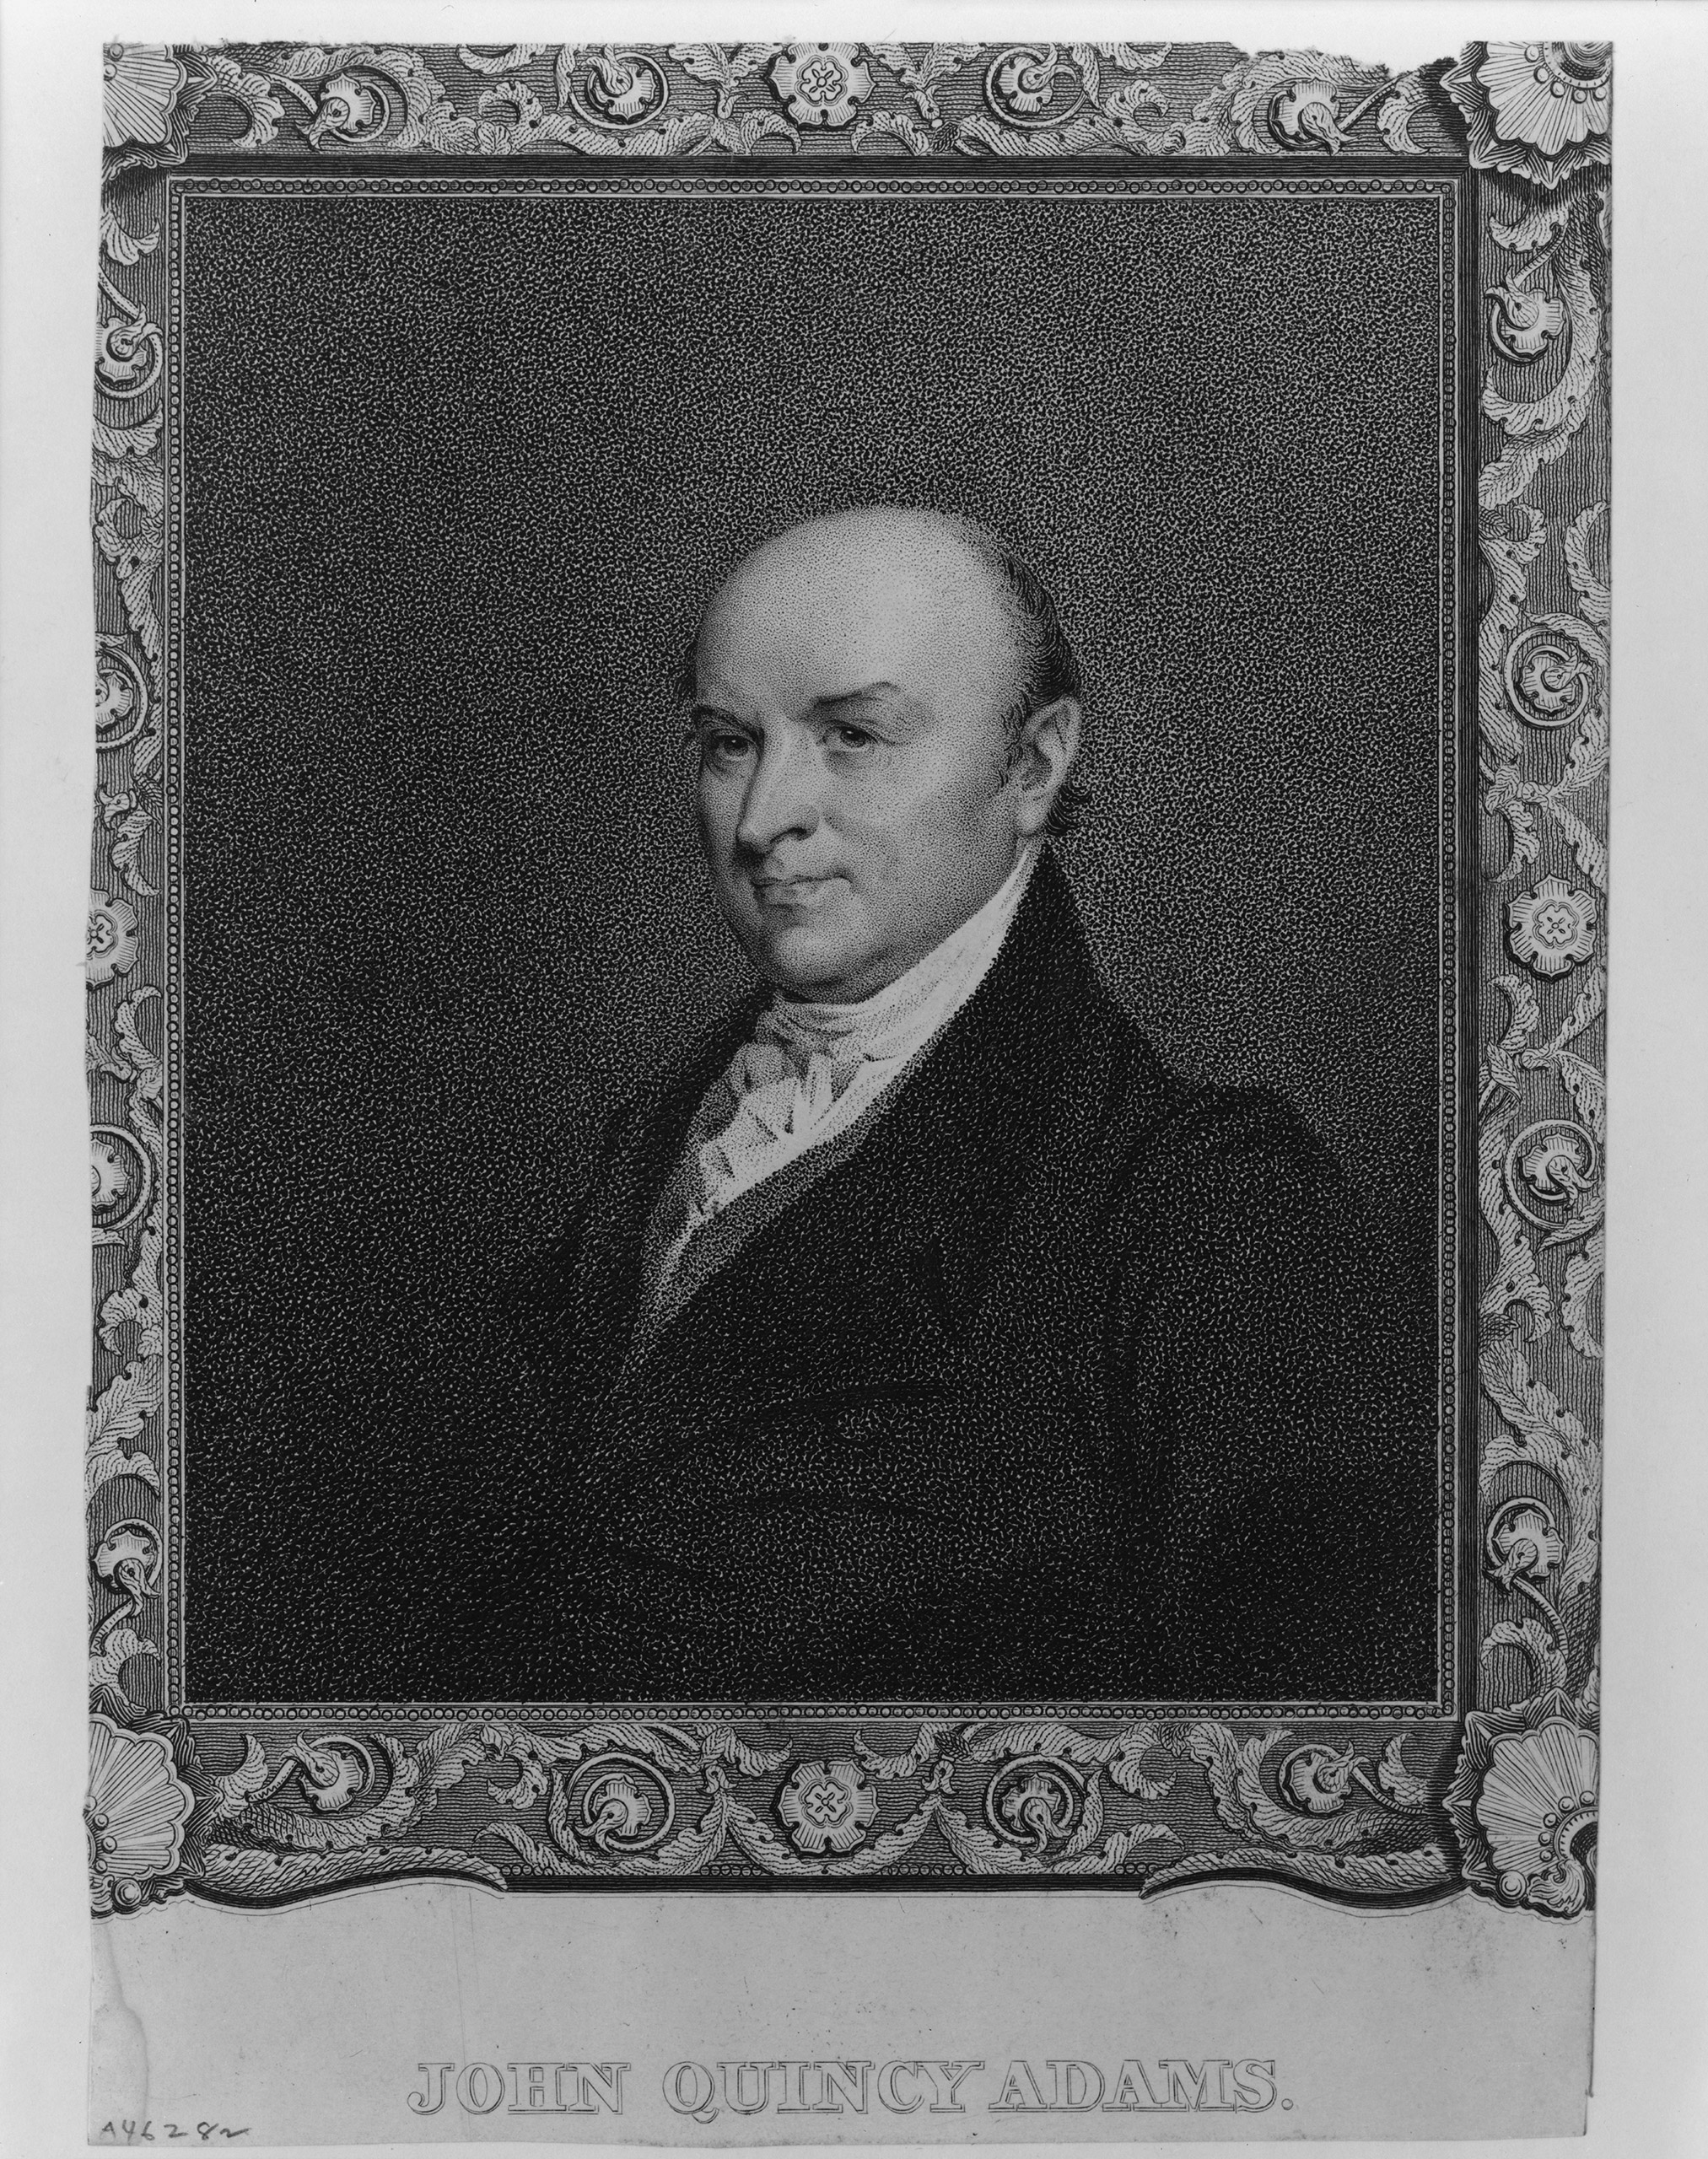 John Quincy Adams, the year of his first inauguration in 1825.